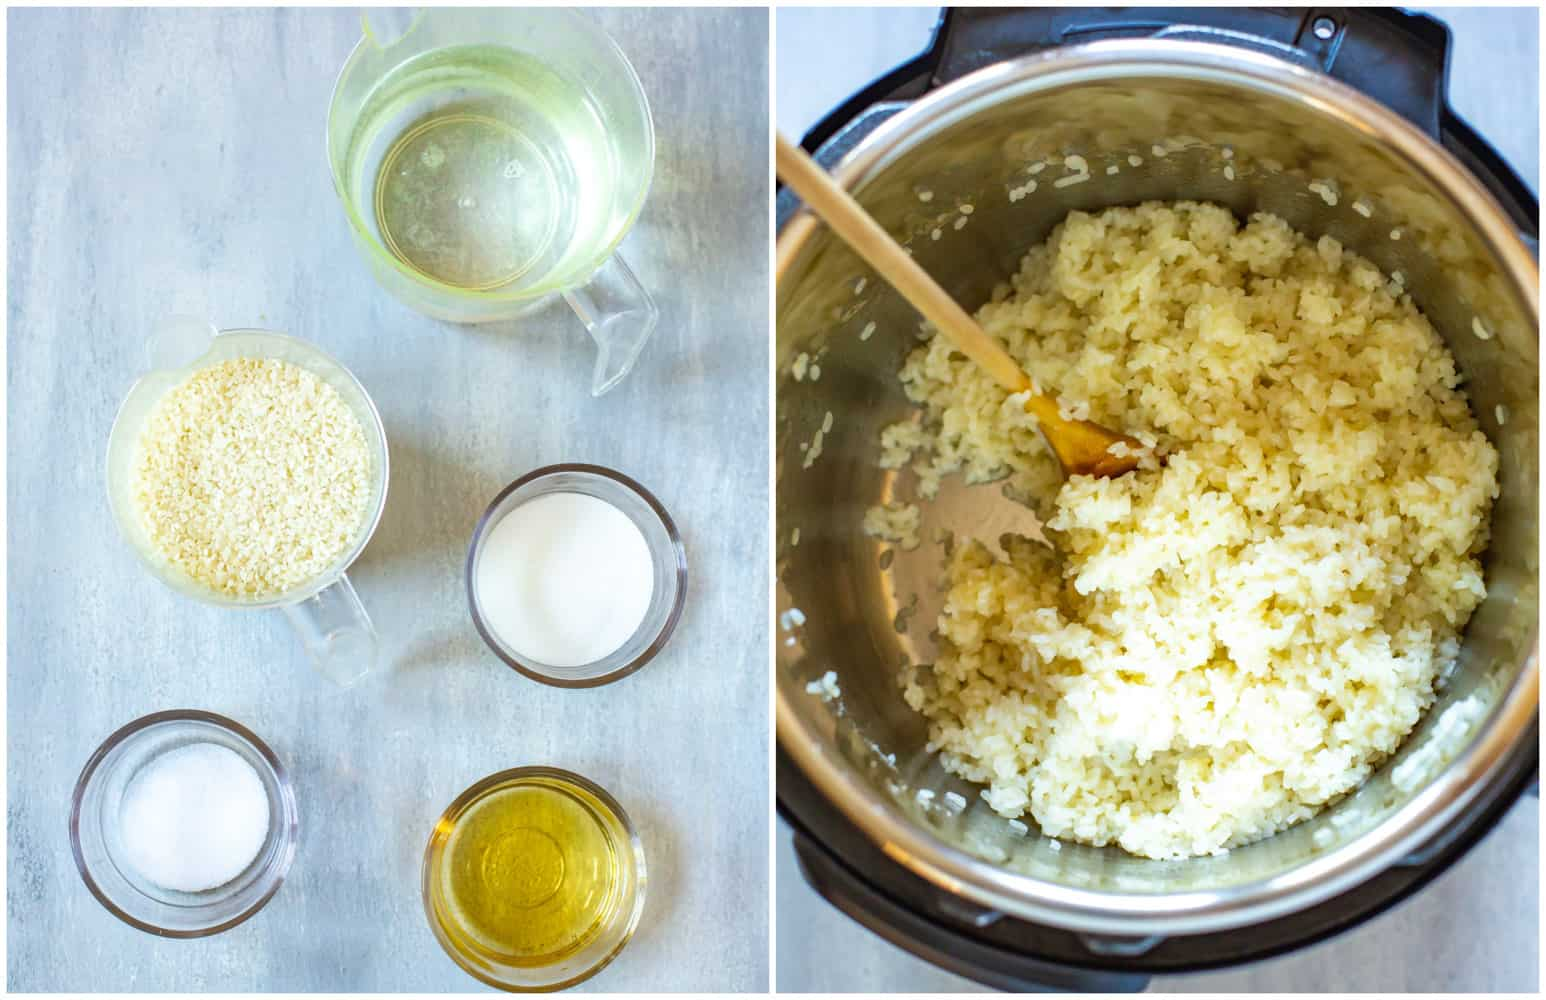 collage: ingredients needed to make sticky rice in pressure cooker, and cooked rice